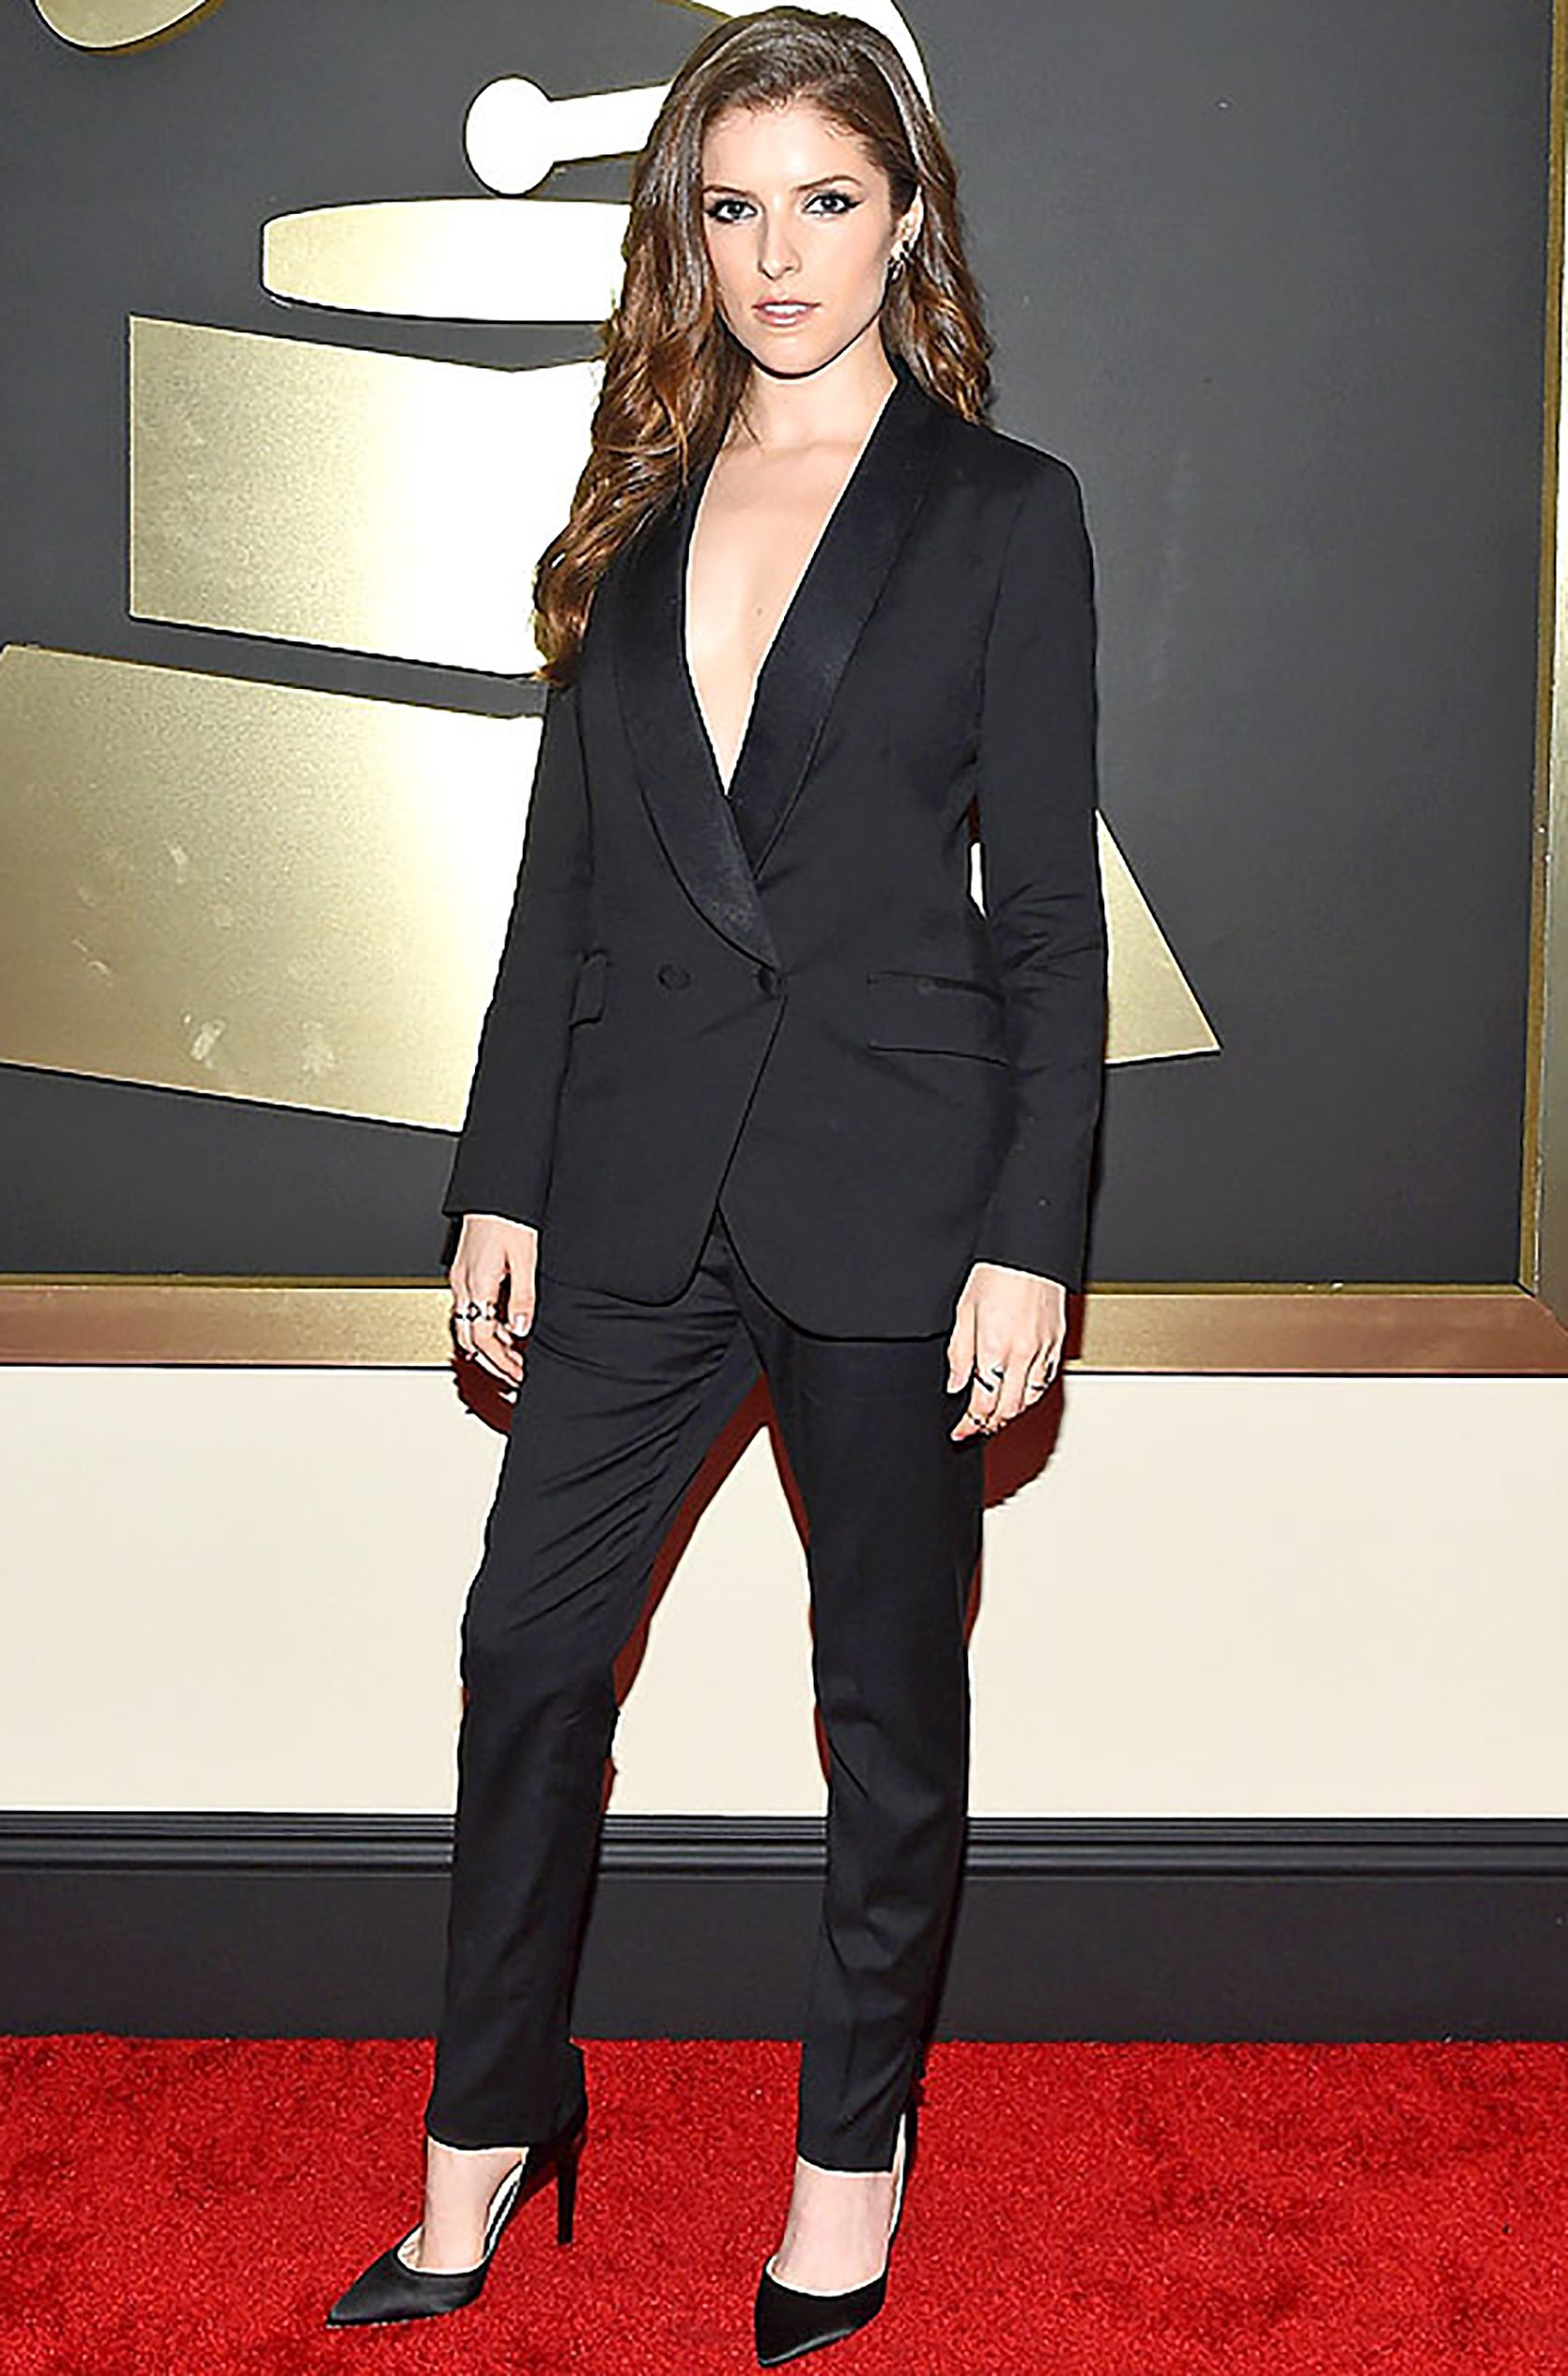 How To Wear A Shirtless Tuxedo Celebrity Fashion Fashion Suits For Women Fashion Tips For Women [ 2545 x 1680 Pixel ]